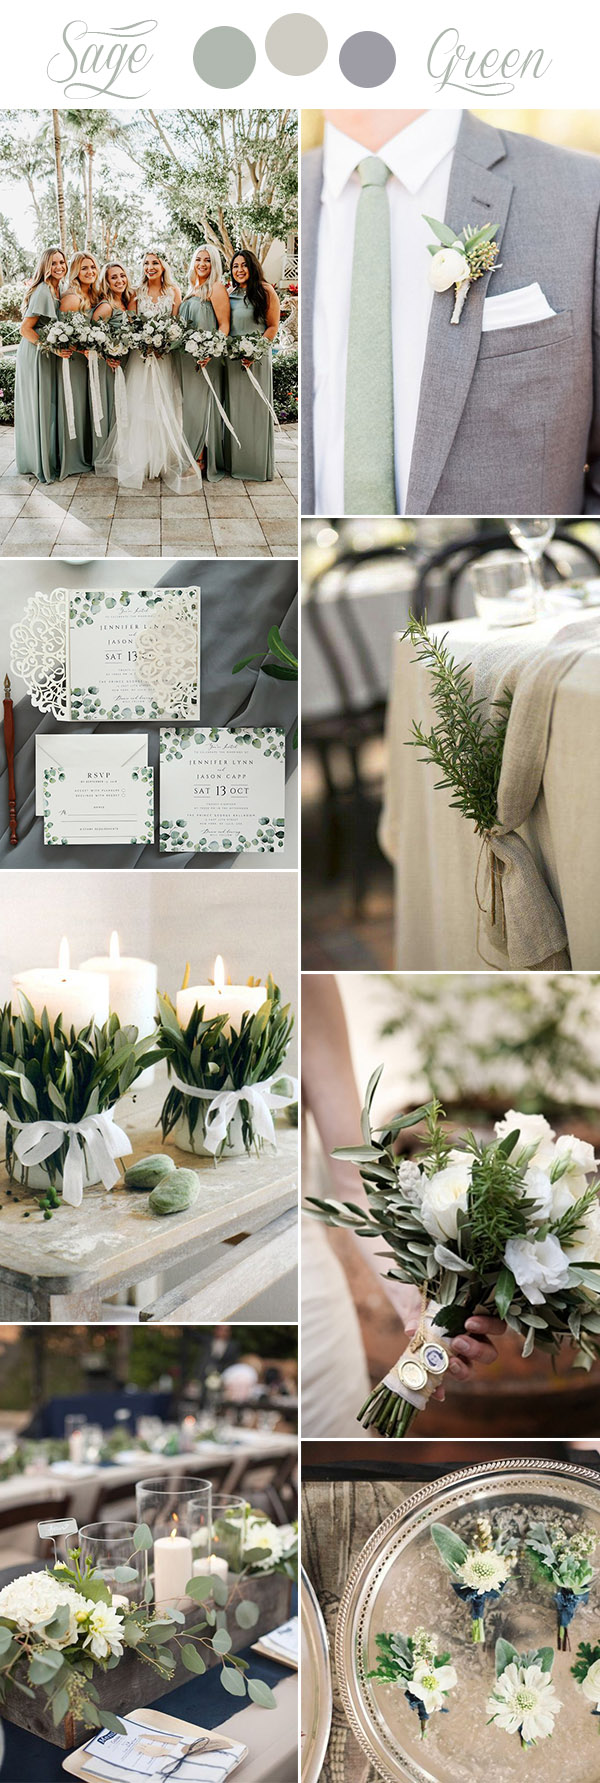 sage green, beige and grey rustic chic wedding colors